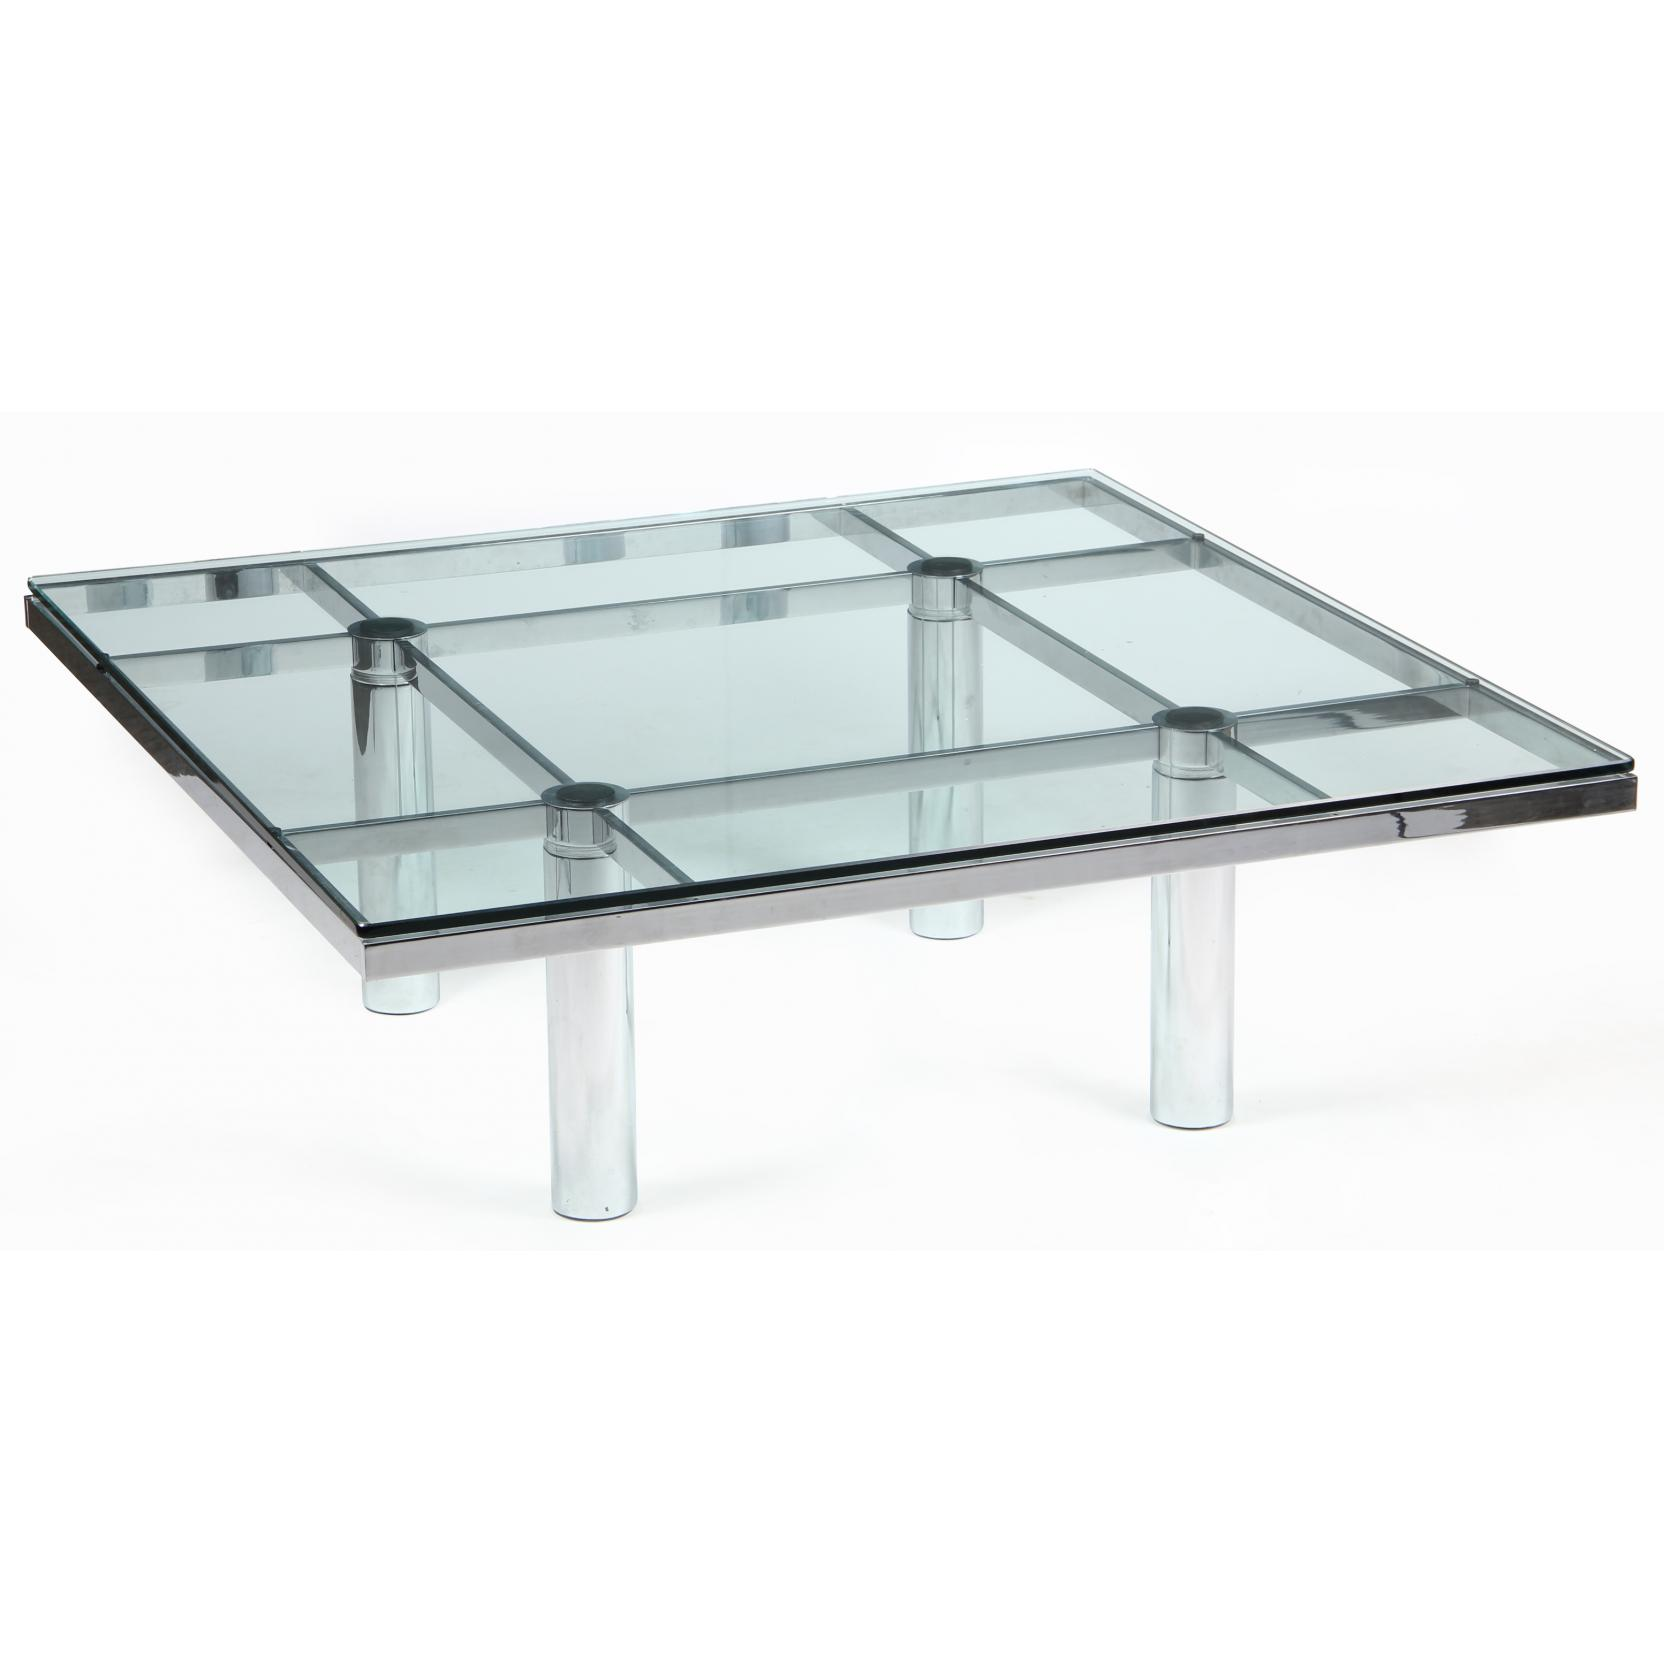 post-modern-glass-and-chrome-coffee-table